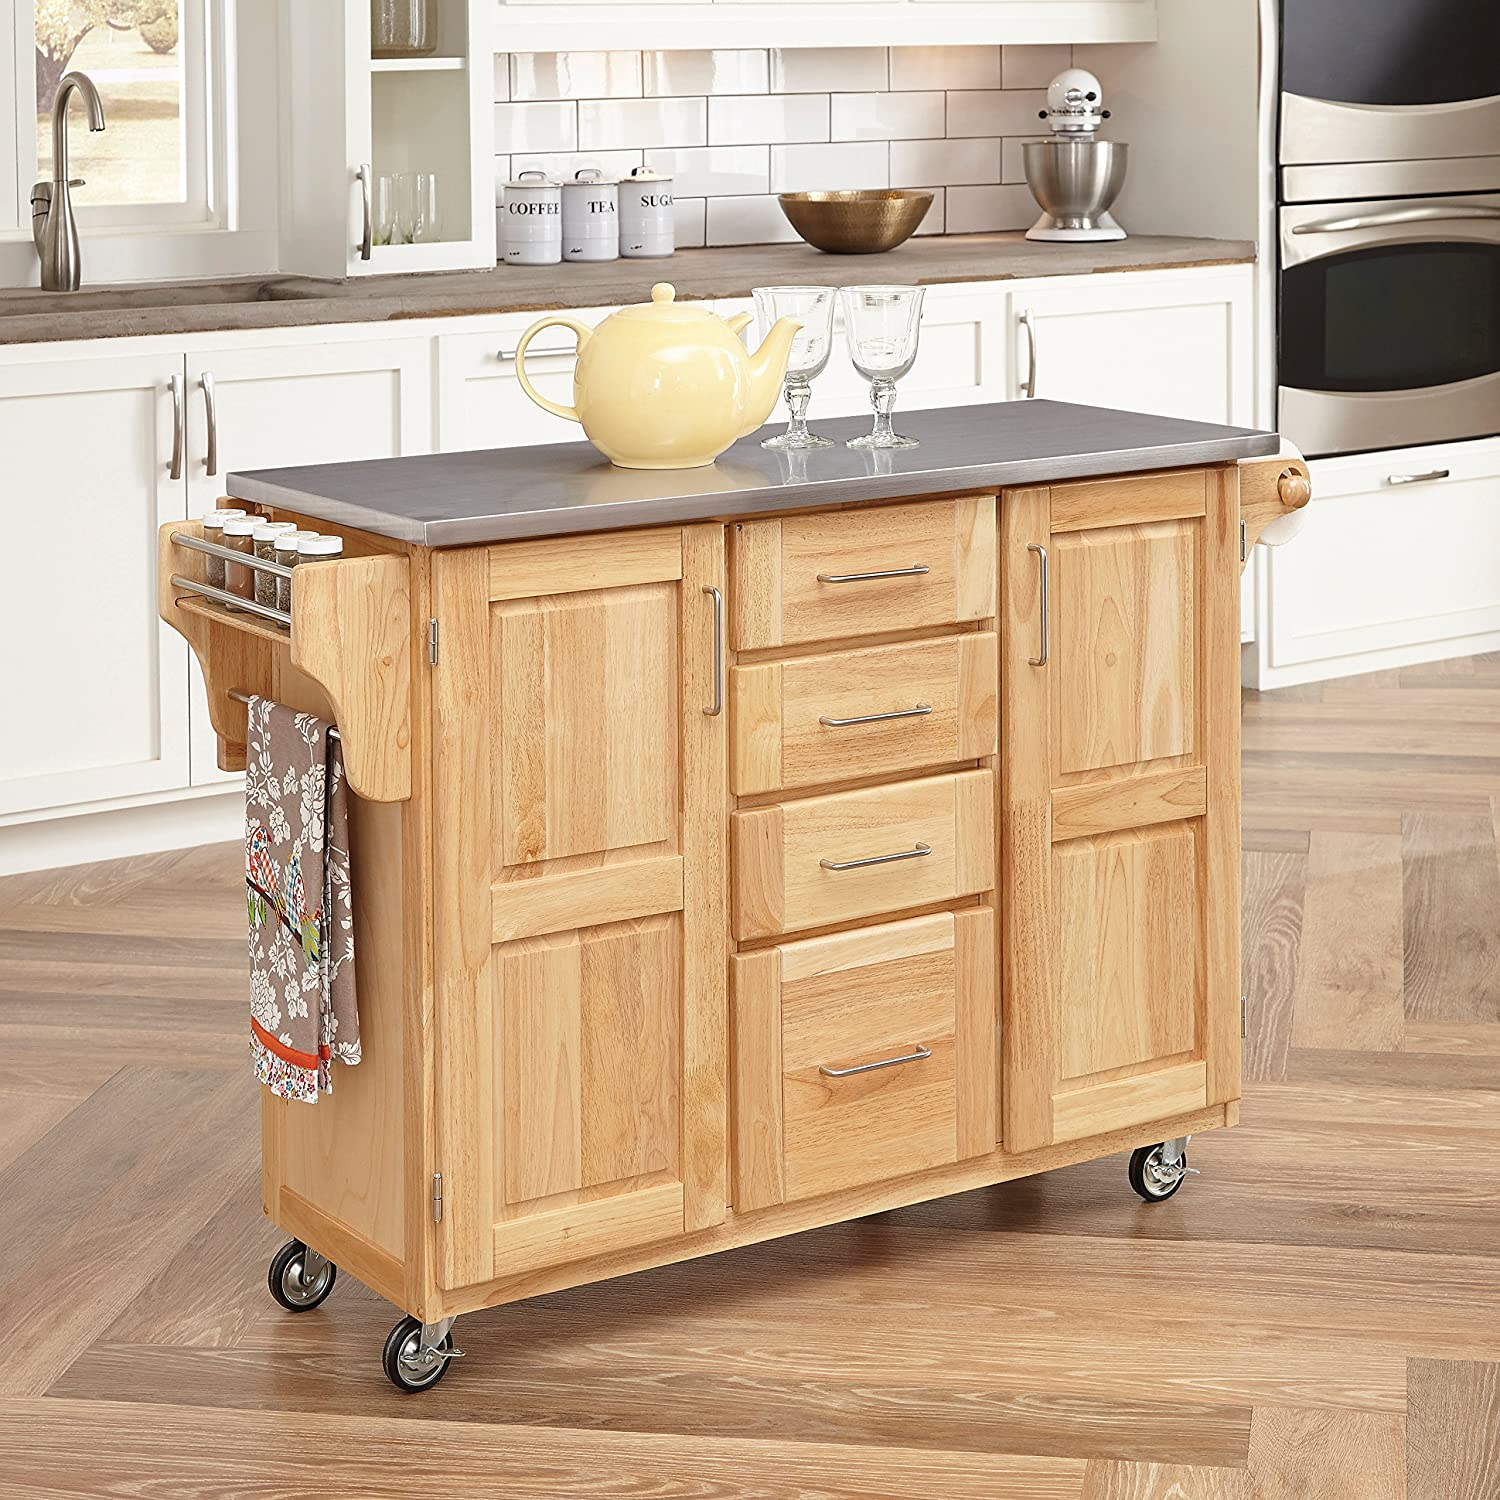 amazon com home styles 5086 95 stainless steel top kitchen cart amazon com home styles 5086 95 stainless steel top kitchen cart with breakfast bar natural finish bar serving carts